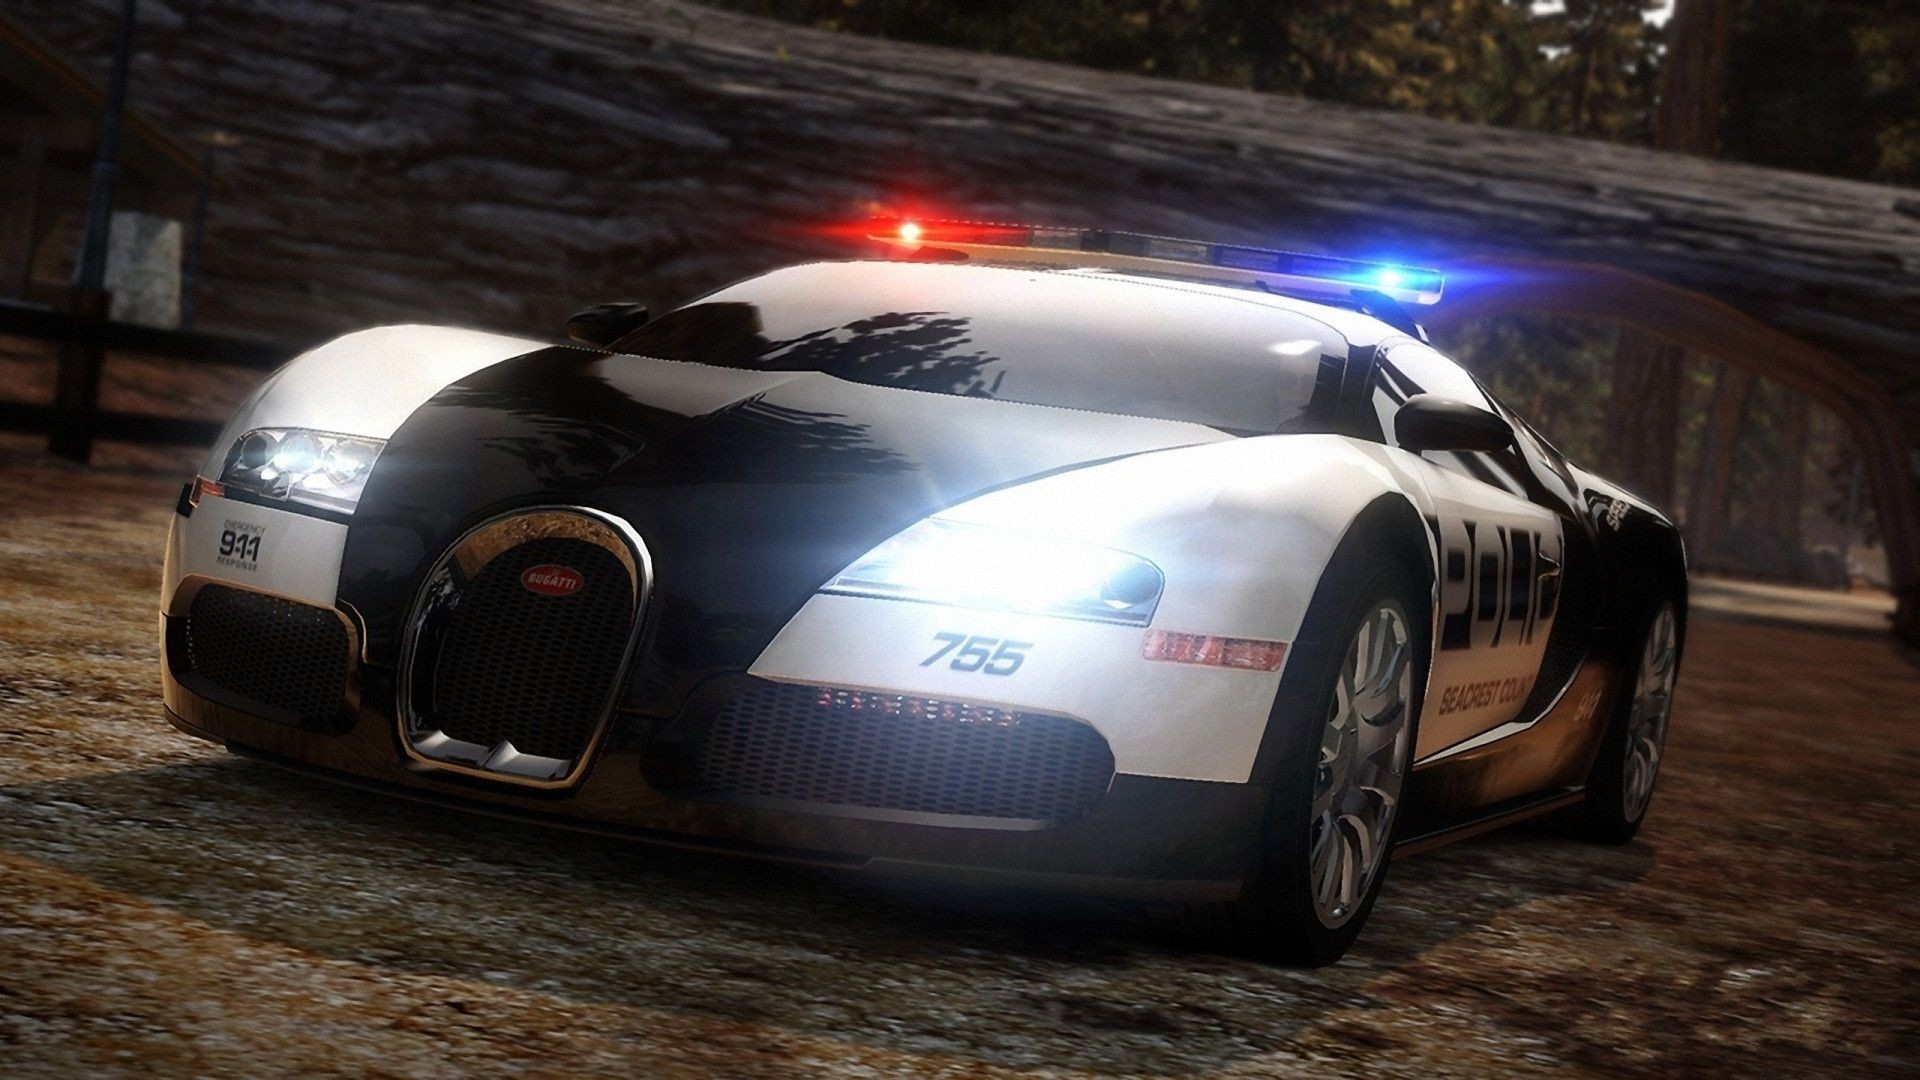 Dubai Police Car Wallpapers Police Wallpaper Pictures 72 Images